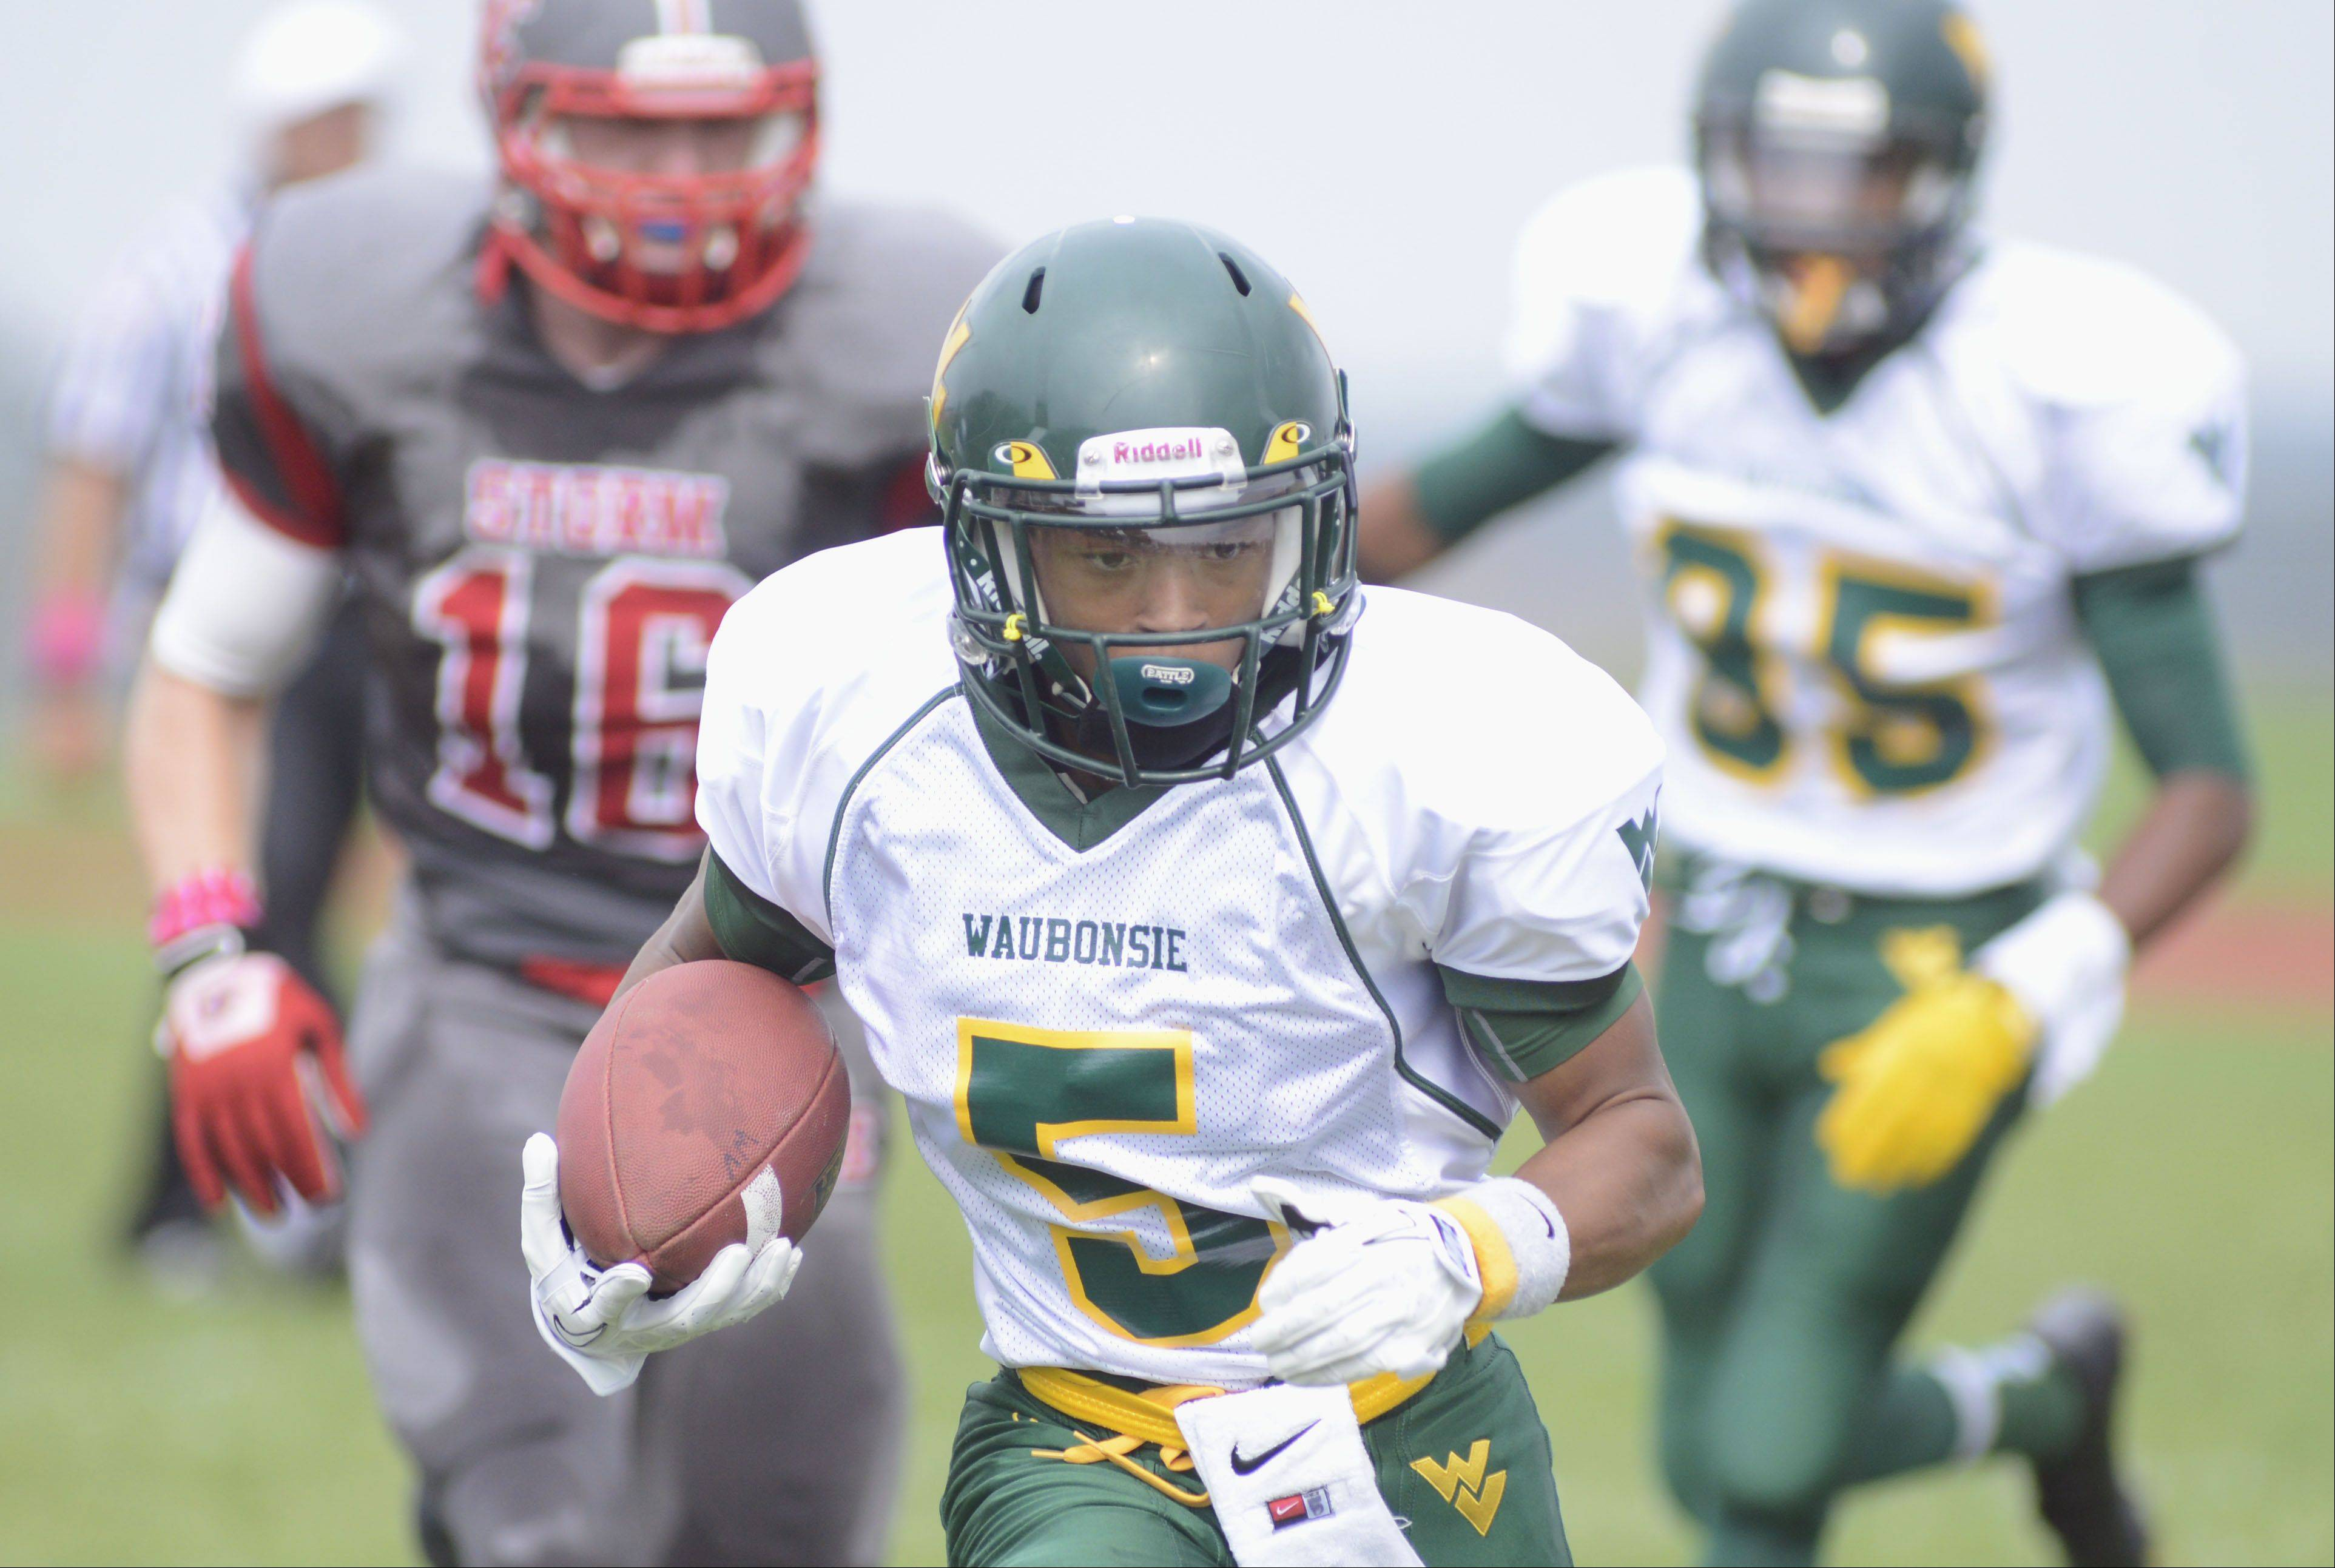 Waubonsie Valley�s Devin Strickland makes his way to the end zone to score a touchdown in the first quarter on Saturday, October 5.